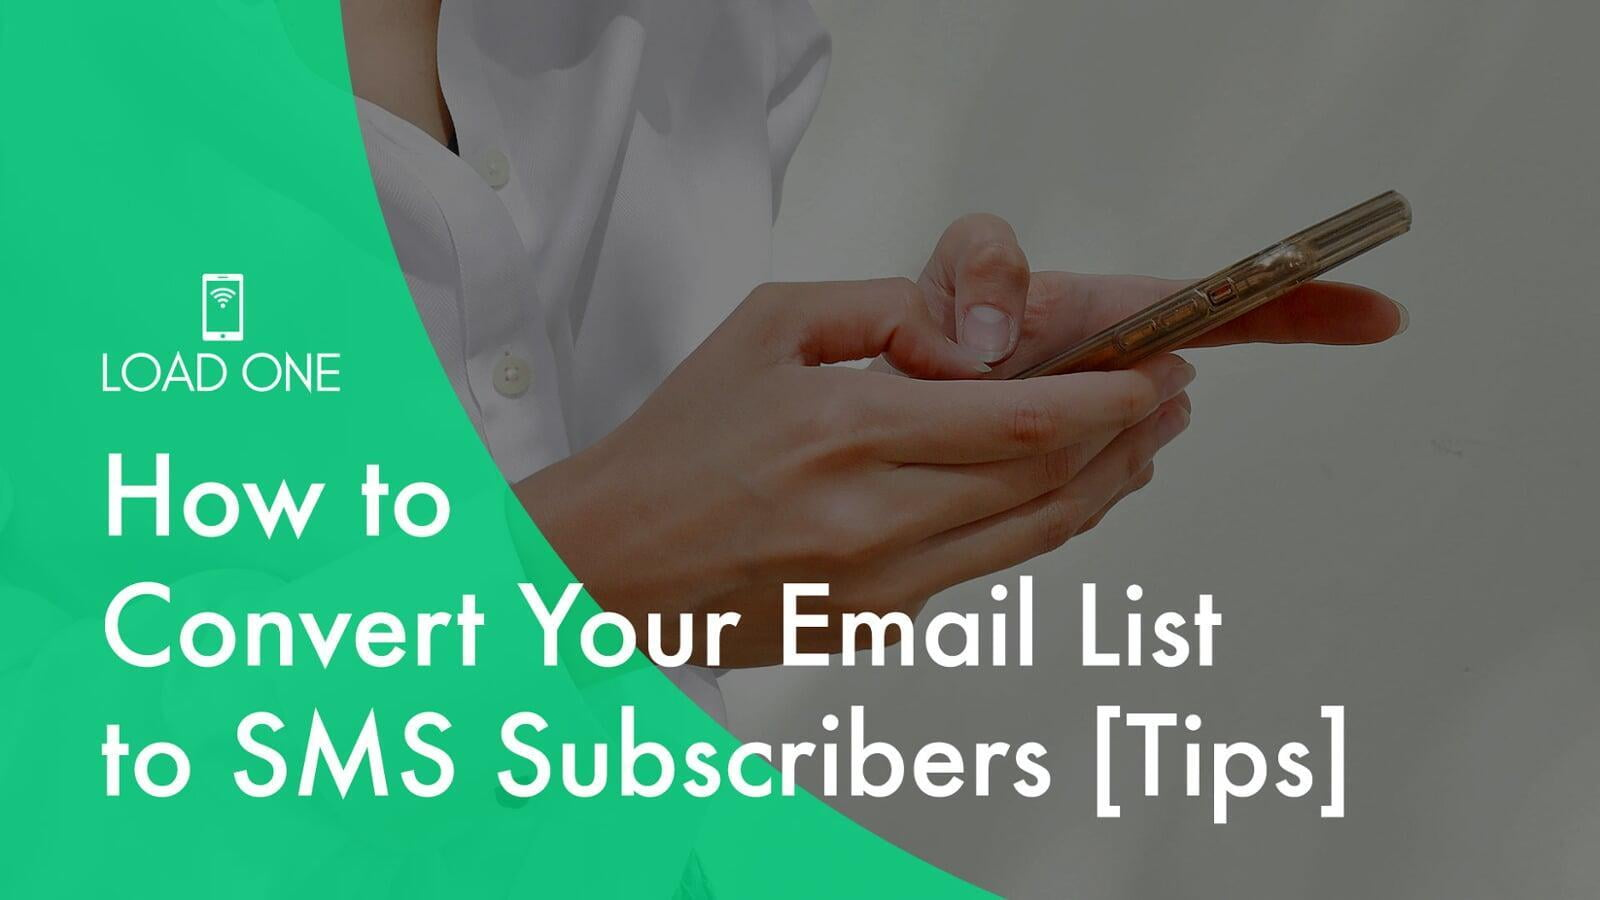 How to Convert Your Email List to SMS Subscribers [Tips]